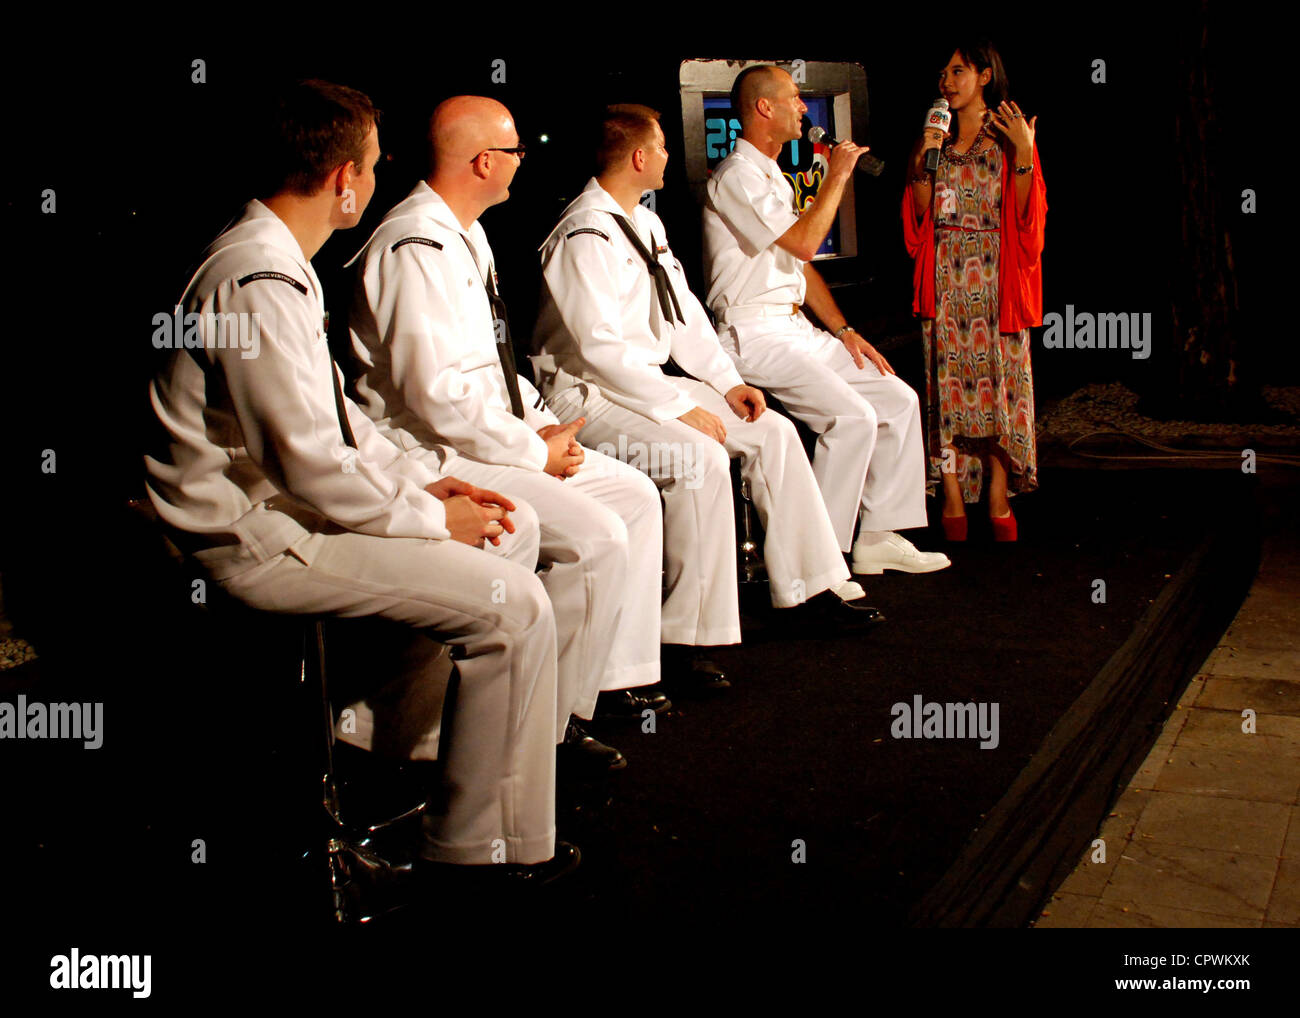 Members of the U.S. Navy 7th Fleet Band, Orient Express, conduct an interview with a J-Trax reporter, a local television Stock Photo